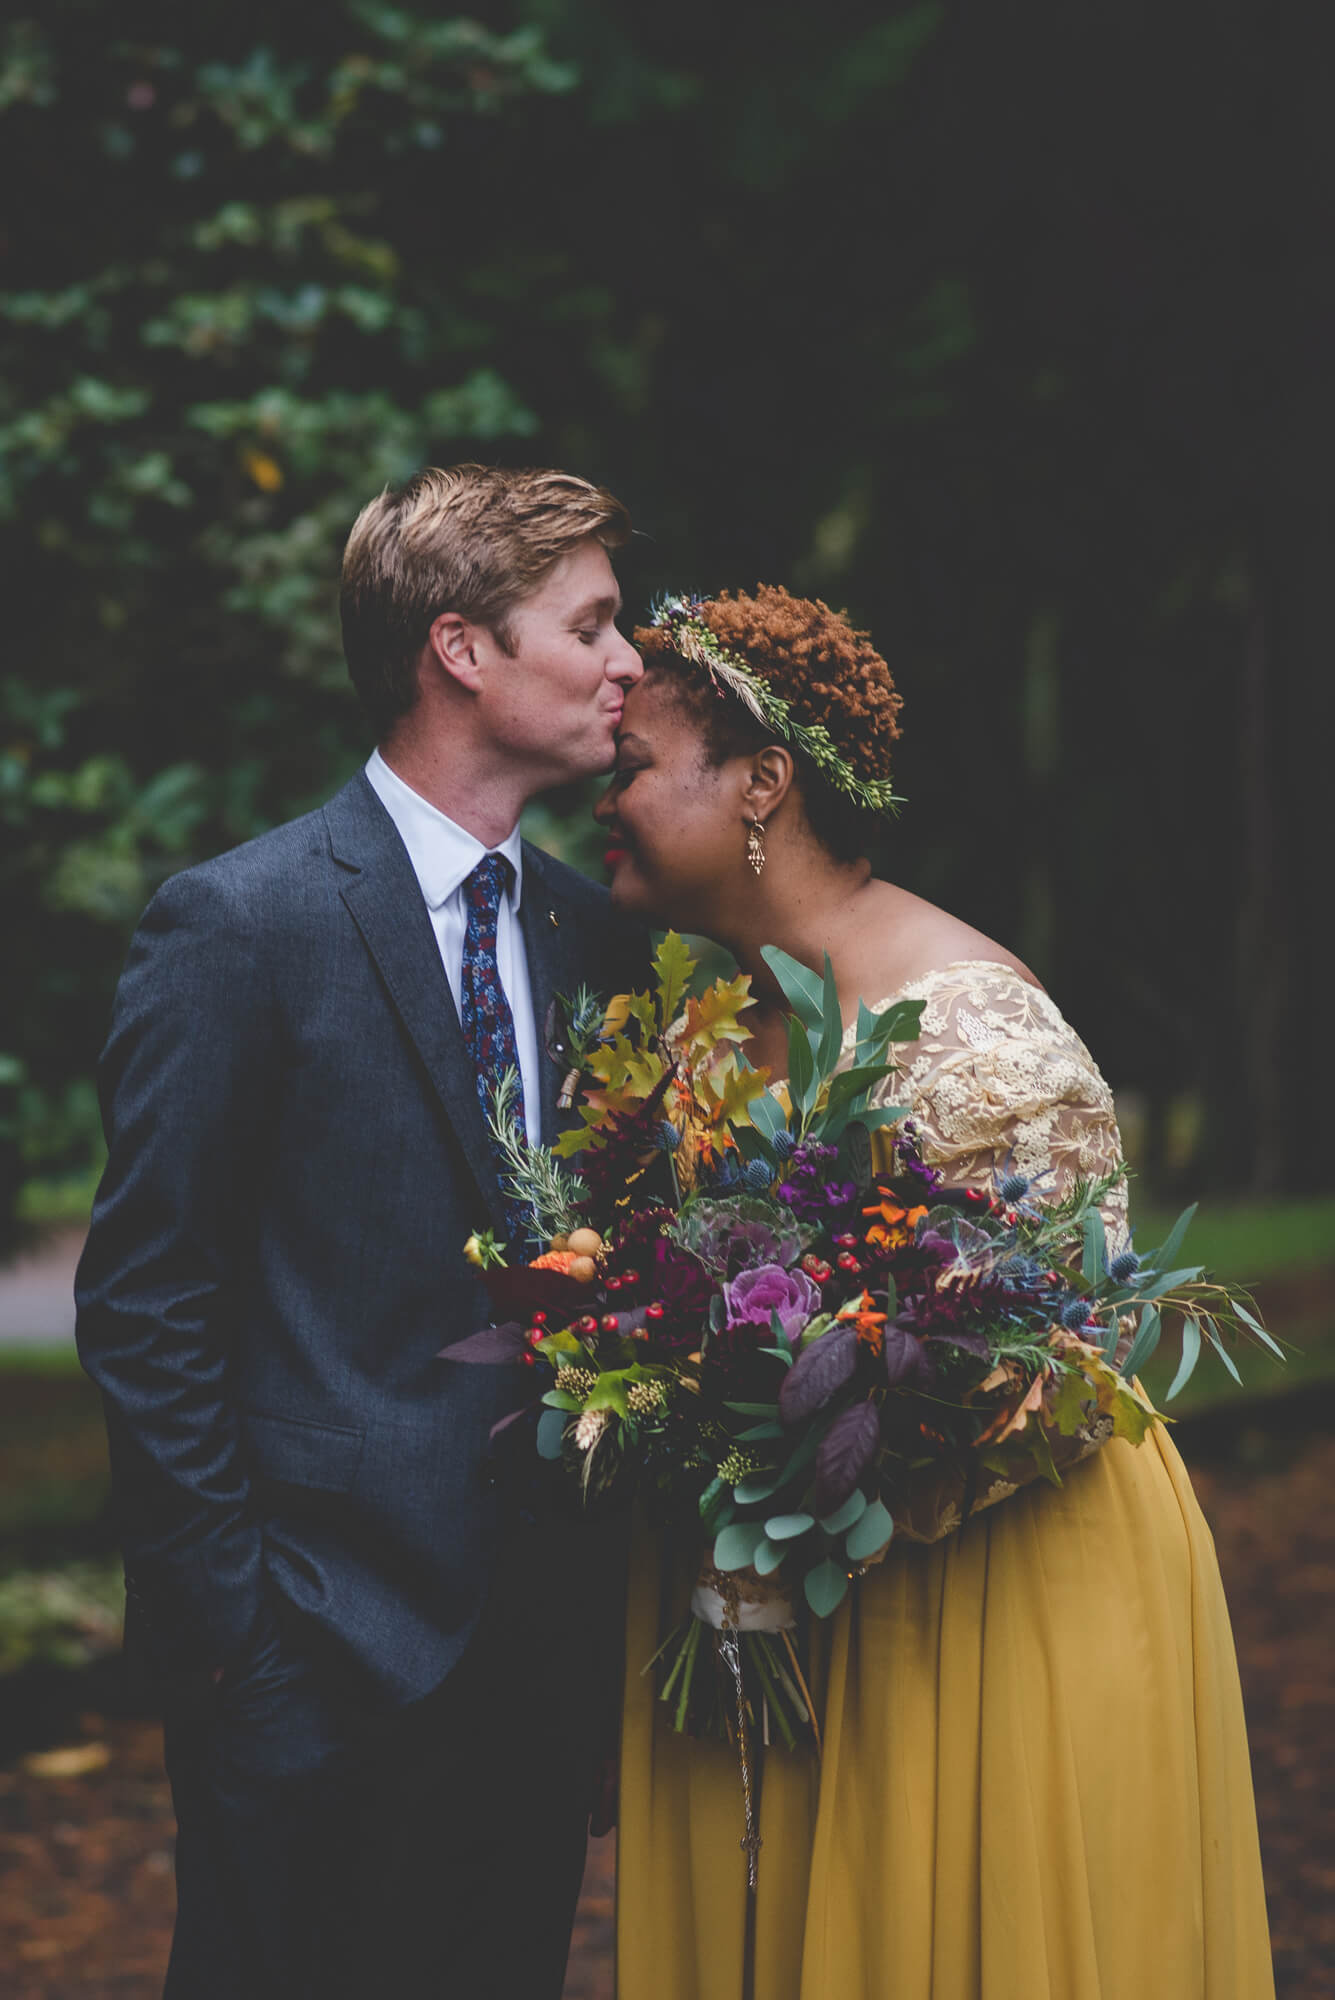 groom kissing bride's forehead in yellow flowing wedding dress with succulent bouquet and flower crown